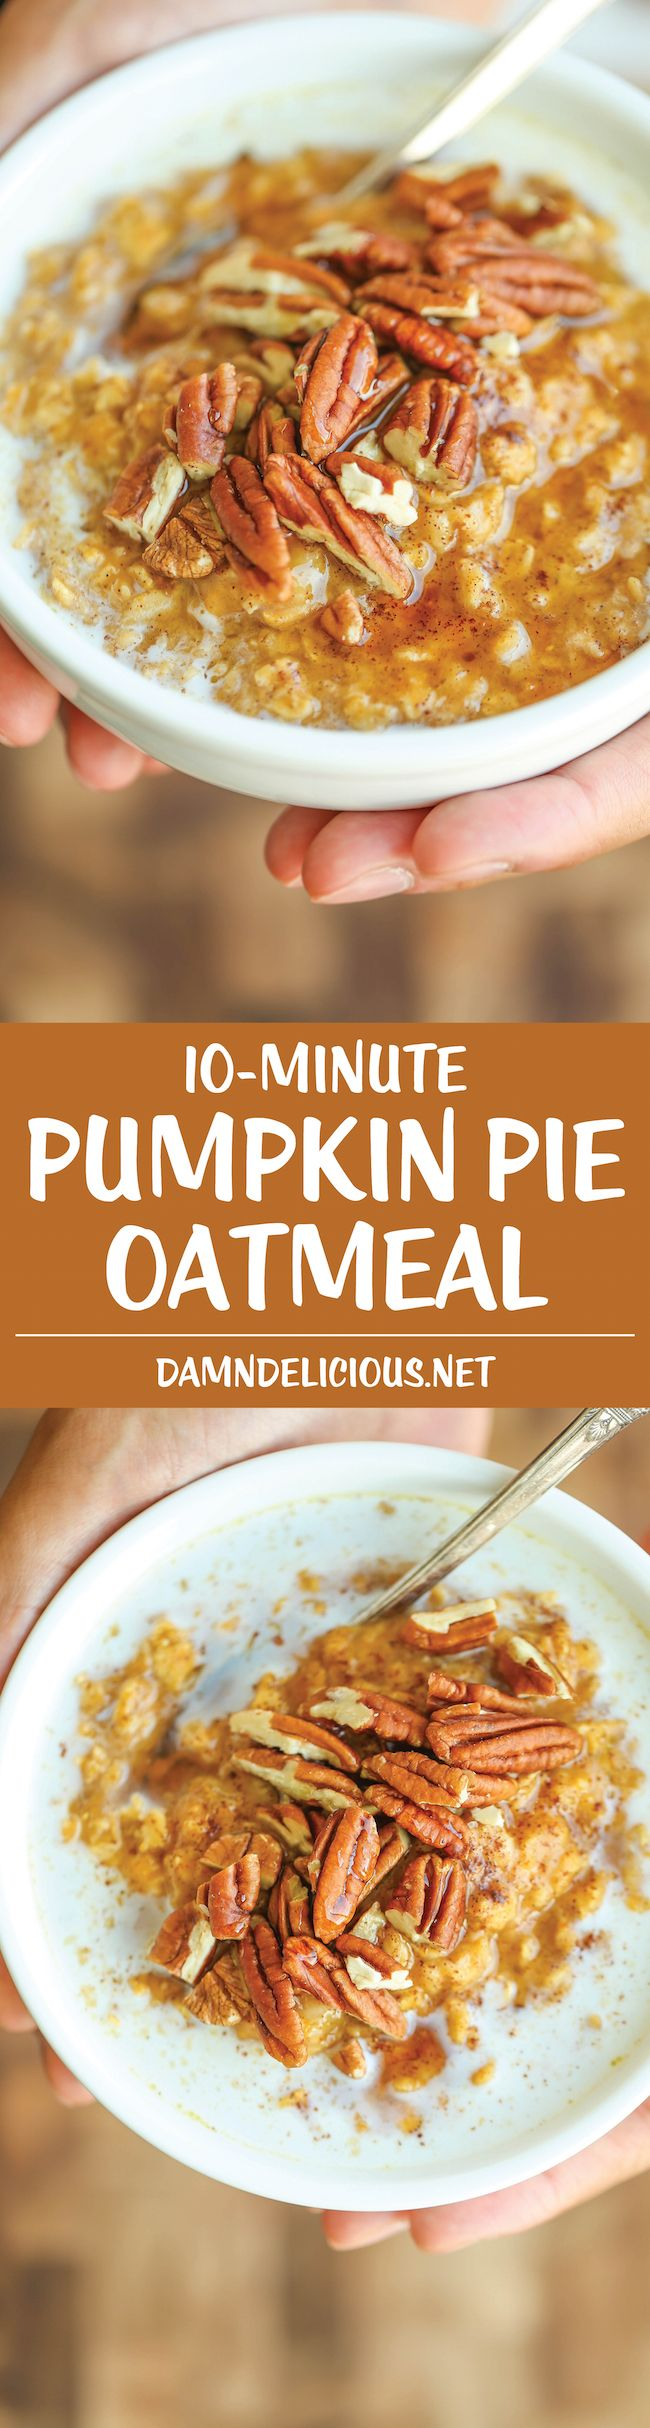 Pumpkin Pie Oatmeal ::: Super healthy and comes together in just 10 minutes